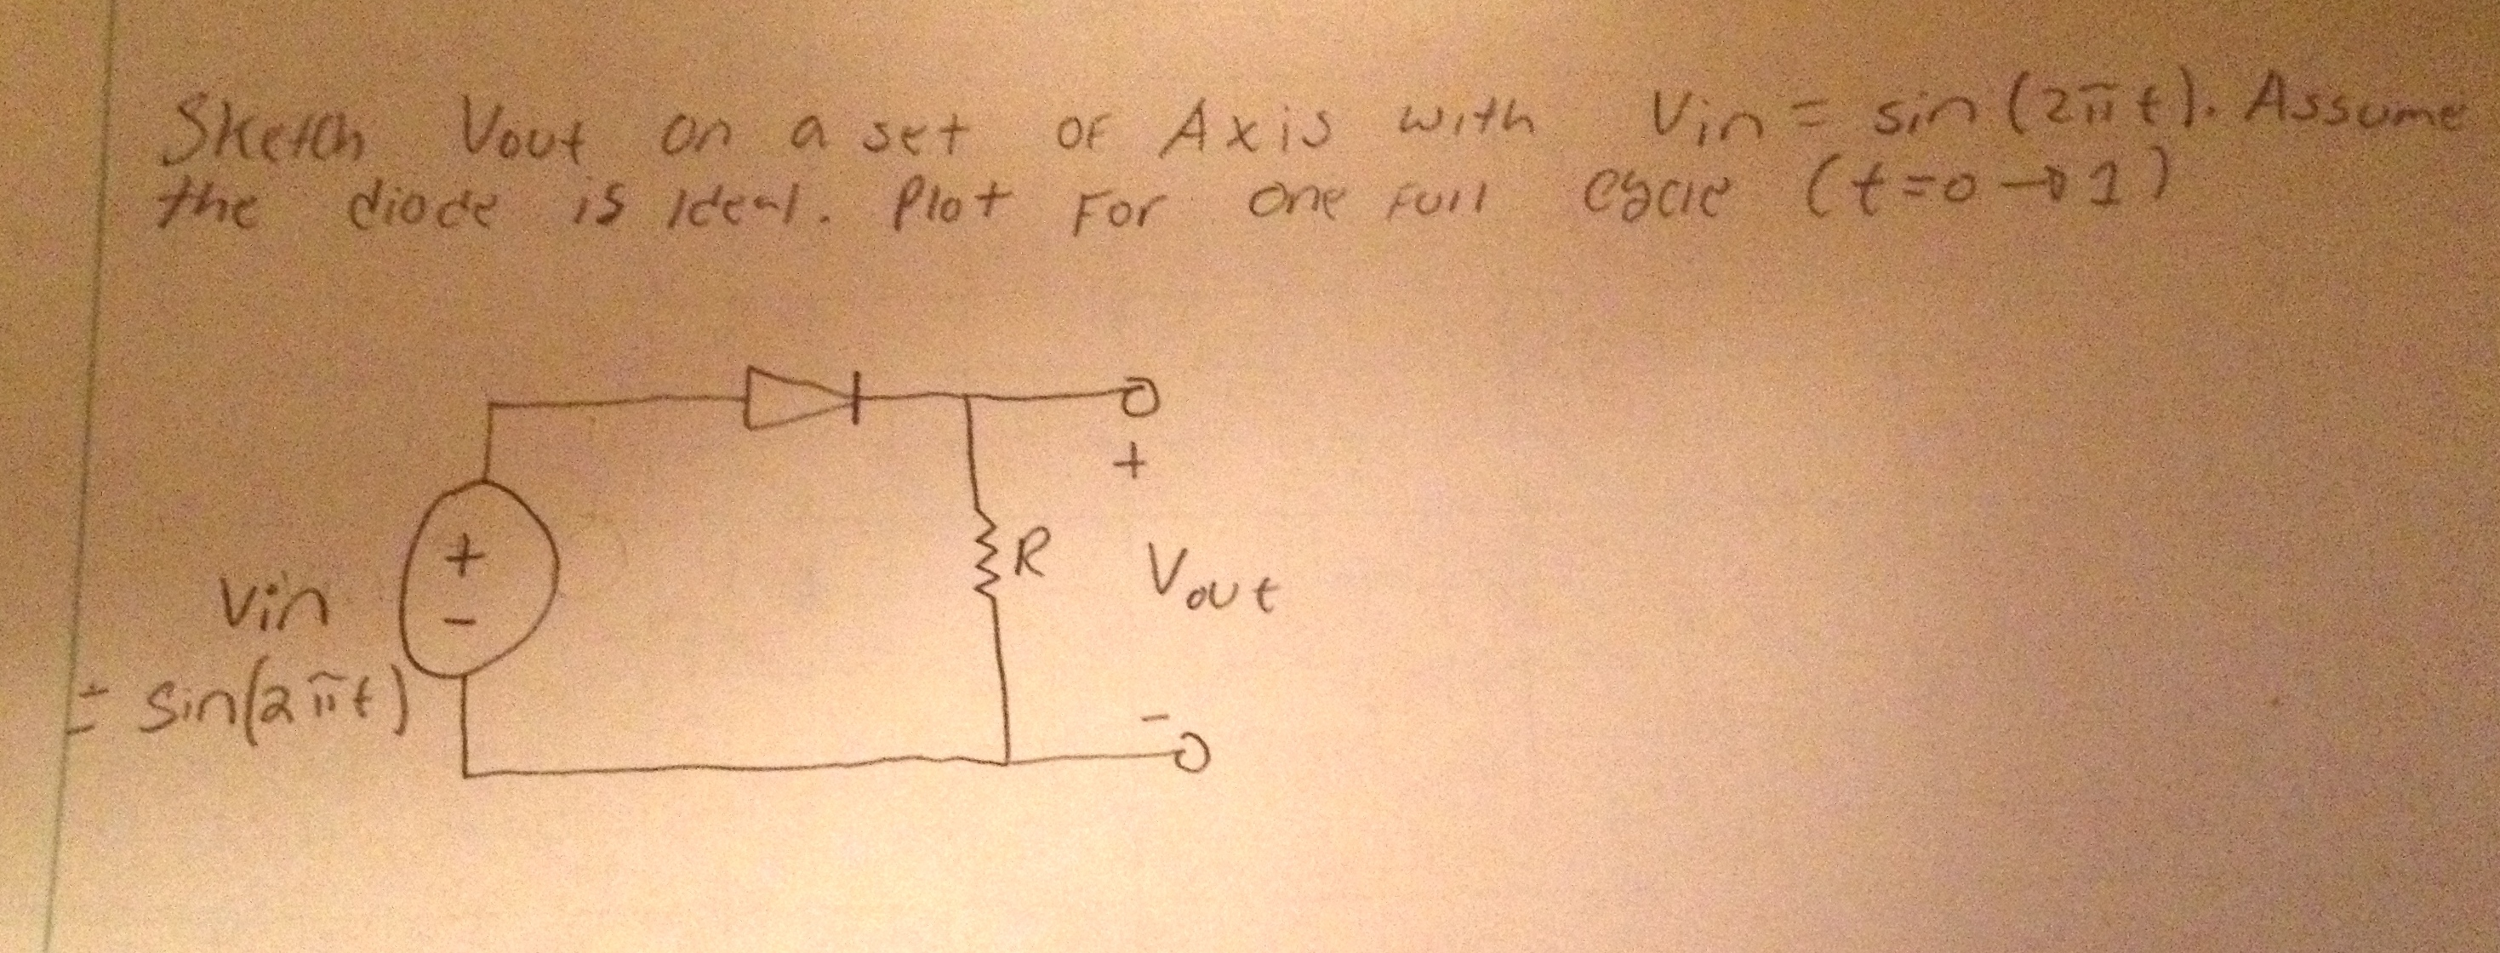 Sketch Vout on a set of Axis with Vin = sin (2 pi